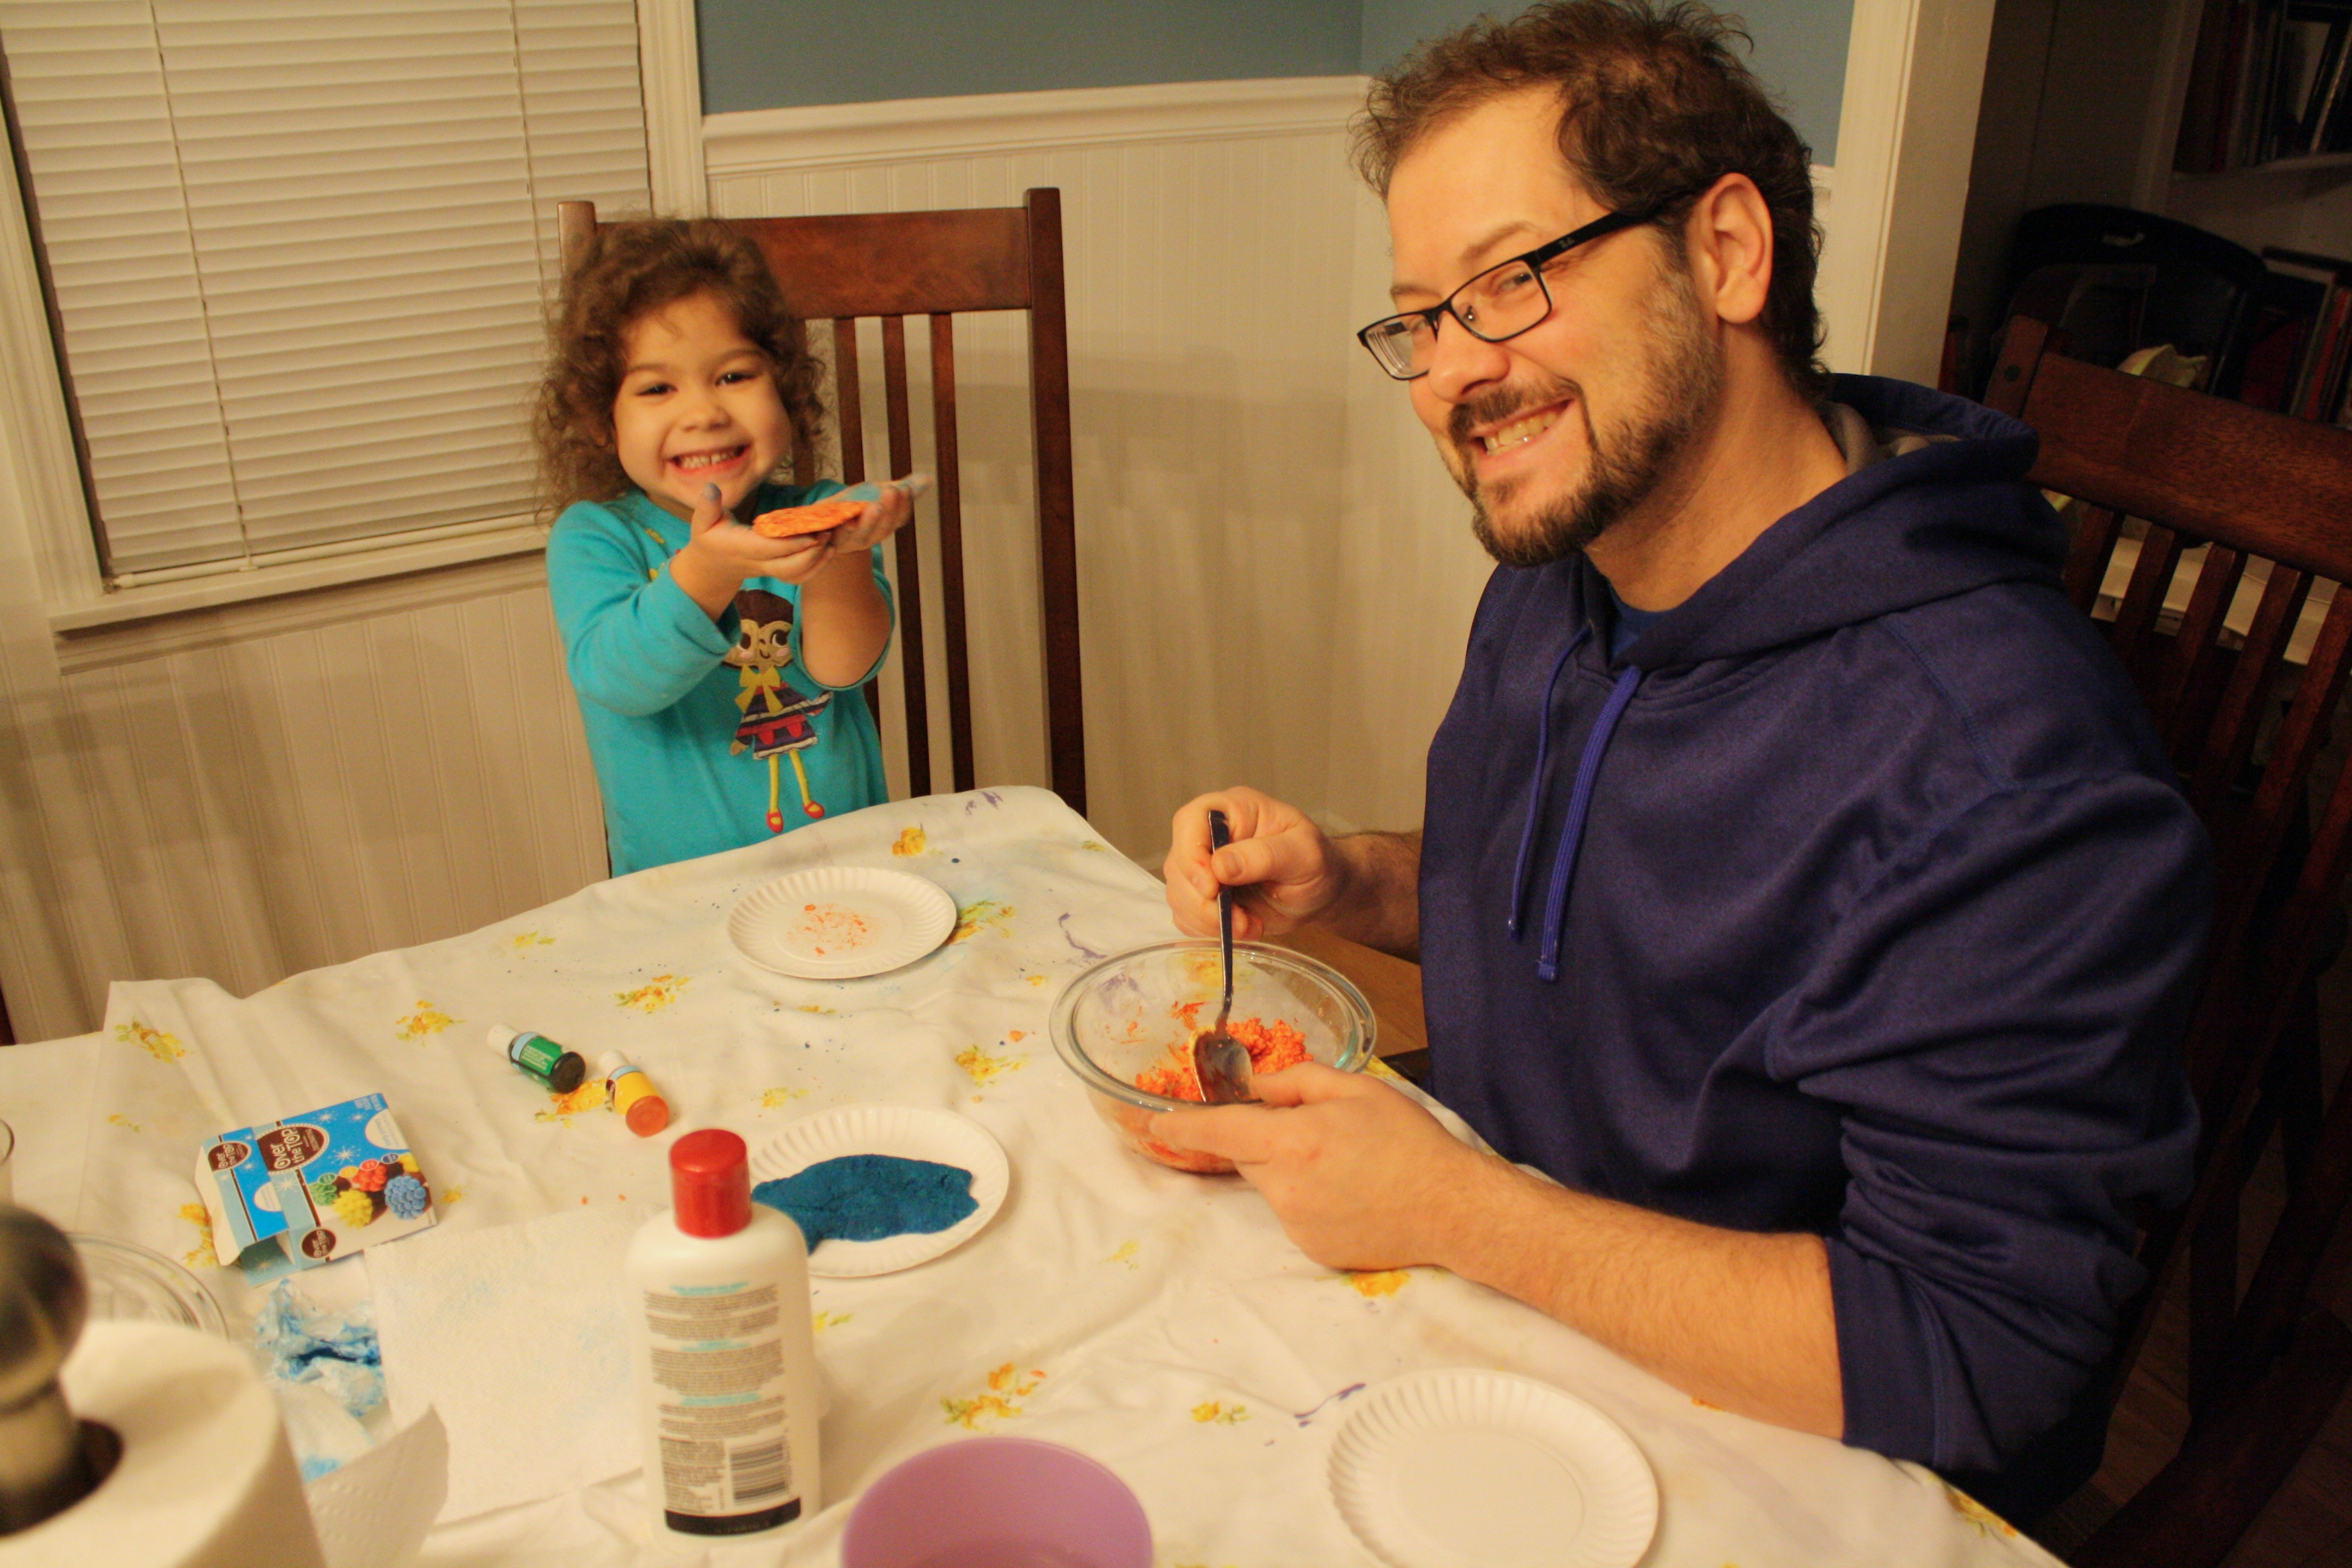 Making homemade play dough together